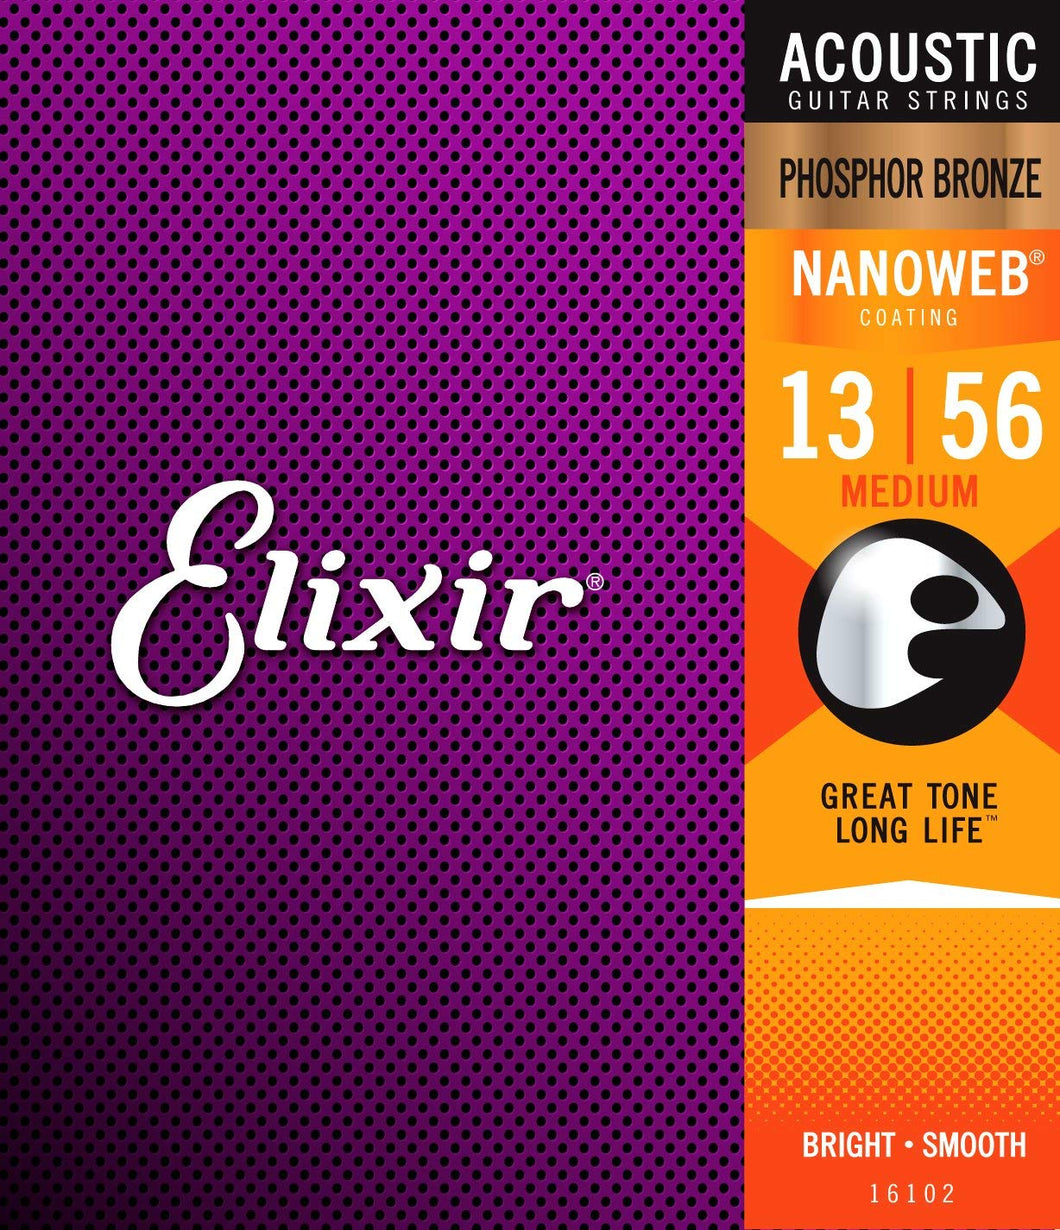 Elixir 16102 Phosphor Bronze Nanoweb Coating 13-56 Acoustic Guitar Strings